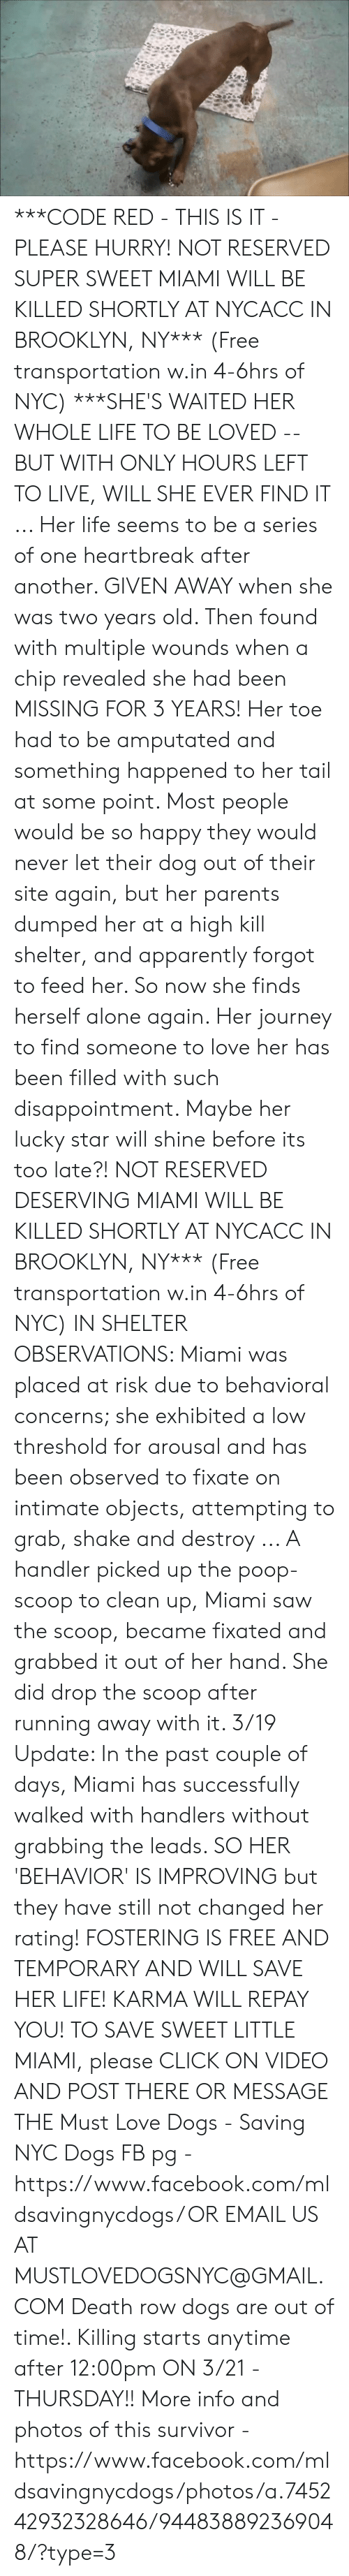 Being Alone, Apparently, and Click: ***CODE RED - THIS IS IT - PLEASE HURRY!  NOT RESERVED SUPER SWEET MIAMI WILL BE KILLED SHORTLY AT NYCACC IN BROOKLYN, NY*** (Free transportation w.in 4-6hrs of NYC)  ***SHE'S WAITED HER WHOLE LIFE TO BE LOVED -- BUT WITH ONLY HOURS LEFT TO LIVE, WILL SHE EVER FIND IT ... Her life seems to be a series of one heartbreak after another. GIVEN AWAY when she was two years old. Then found with multiple wounds when a chip revealed she had been MISSING FOR 3 YEARS! Her toe had to be amputated and something happened to her tail at some point. Most people would be so happy they would never let their dog out of their site again, but her parents dumped her at a high kill shelter, and apparently forgot to feed her. So now she finds herself alone again. Her journey to find someone to love her has been filled with such disappointment. Maybe her lucky star will shine before its too late?! NOT RESERVED DESERVING MIAMI WILL BE KILLED SHORTLY AT NYCACC IN BROOKLYN, NY*** (Free transportation w.in 4-6hrs of NYC)  IN SHELTER OBSERVATIONS:  Miami was placed at risk due to behavioral concerns; she exhibited a low threshold for arousal and has been observed to fixate on intimate objects, attempting to grab, shake and destroy ... A handler picked up the poop-scoop to clean up, Miami saw the scoop, became fixated and grabbed it out of her hand. She did drop the scoop after running away with it.   3/19 Update: In the past couple of days, Miami has successfully walked with handlers without grabbing the leads. SO HER 'BEHAVIOR' IS IMPROVING but they have still not changed her rating!  FOSTERING IS FREE AND TEMPORARY AND WILL SAVE HER LIFE! KARMA WILL REPAY YOU!  TO SAVE SWEET LITTLE MIAMI, please CLICK ON VIDEO AND POST THERE OR MESSAGE THE Must Love Dogs - Saving NYC Dogs FB pg -https://www.facebook.com/mldsavingnycdogs/  OR EMAIL US AT MUSTLOVEDOGSNYC@GMAIL.COM   Death row dogs are out of time!. Killing starts anytime after 12:00pm ON 3/21 - THURSDAY!!   Mo